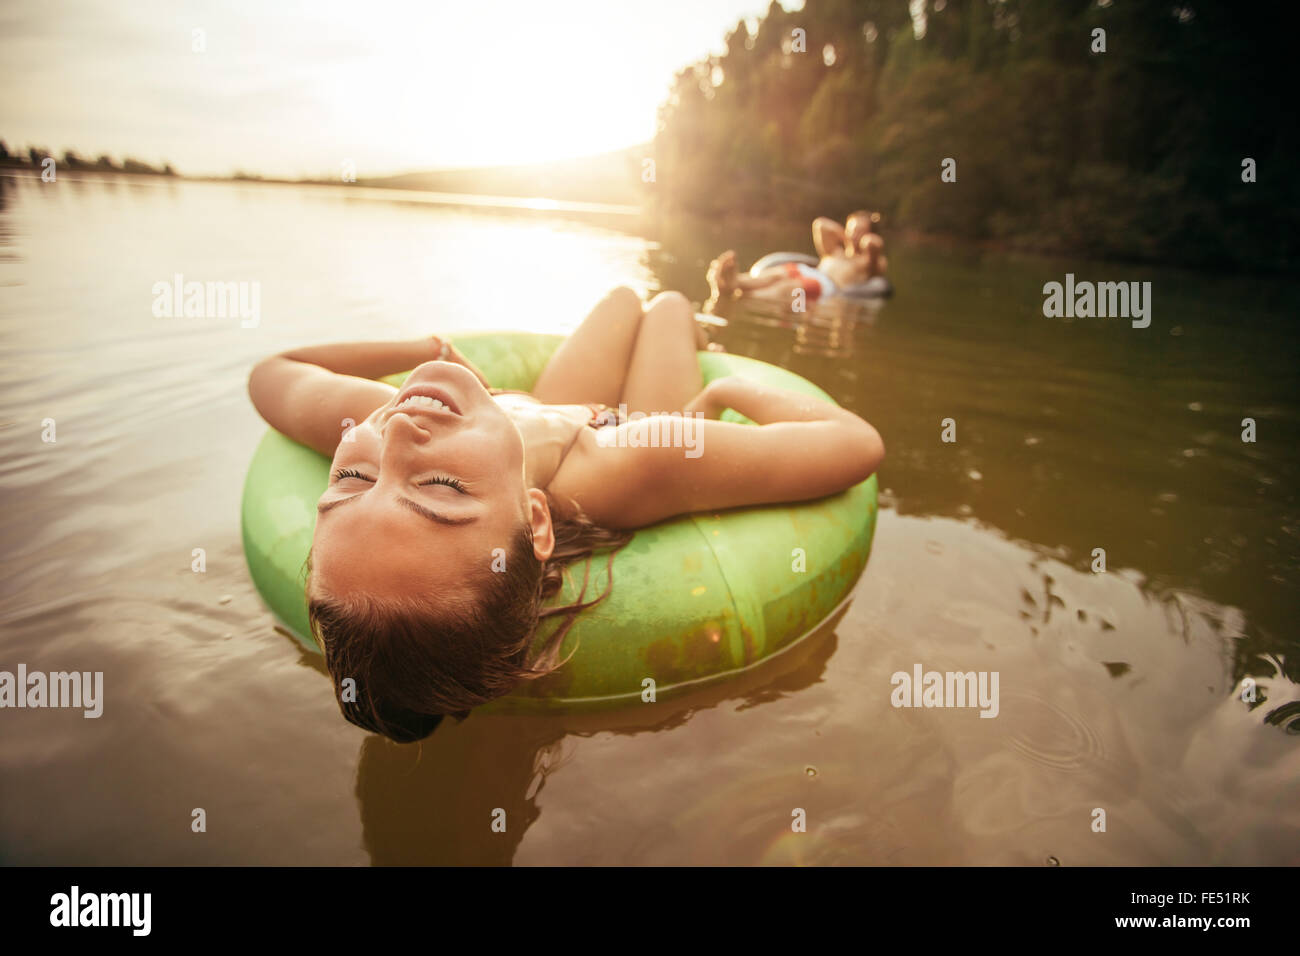 Closeup portrait of young woman with her eyes closed relaxing on inflatable ring in lake on a sunny day. - Stock Image